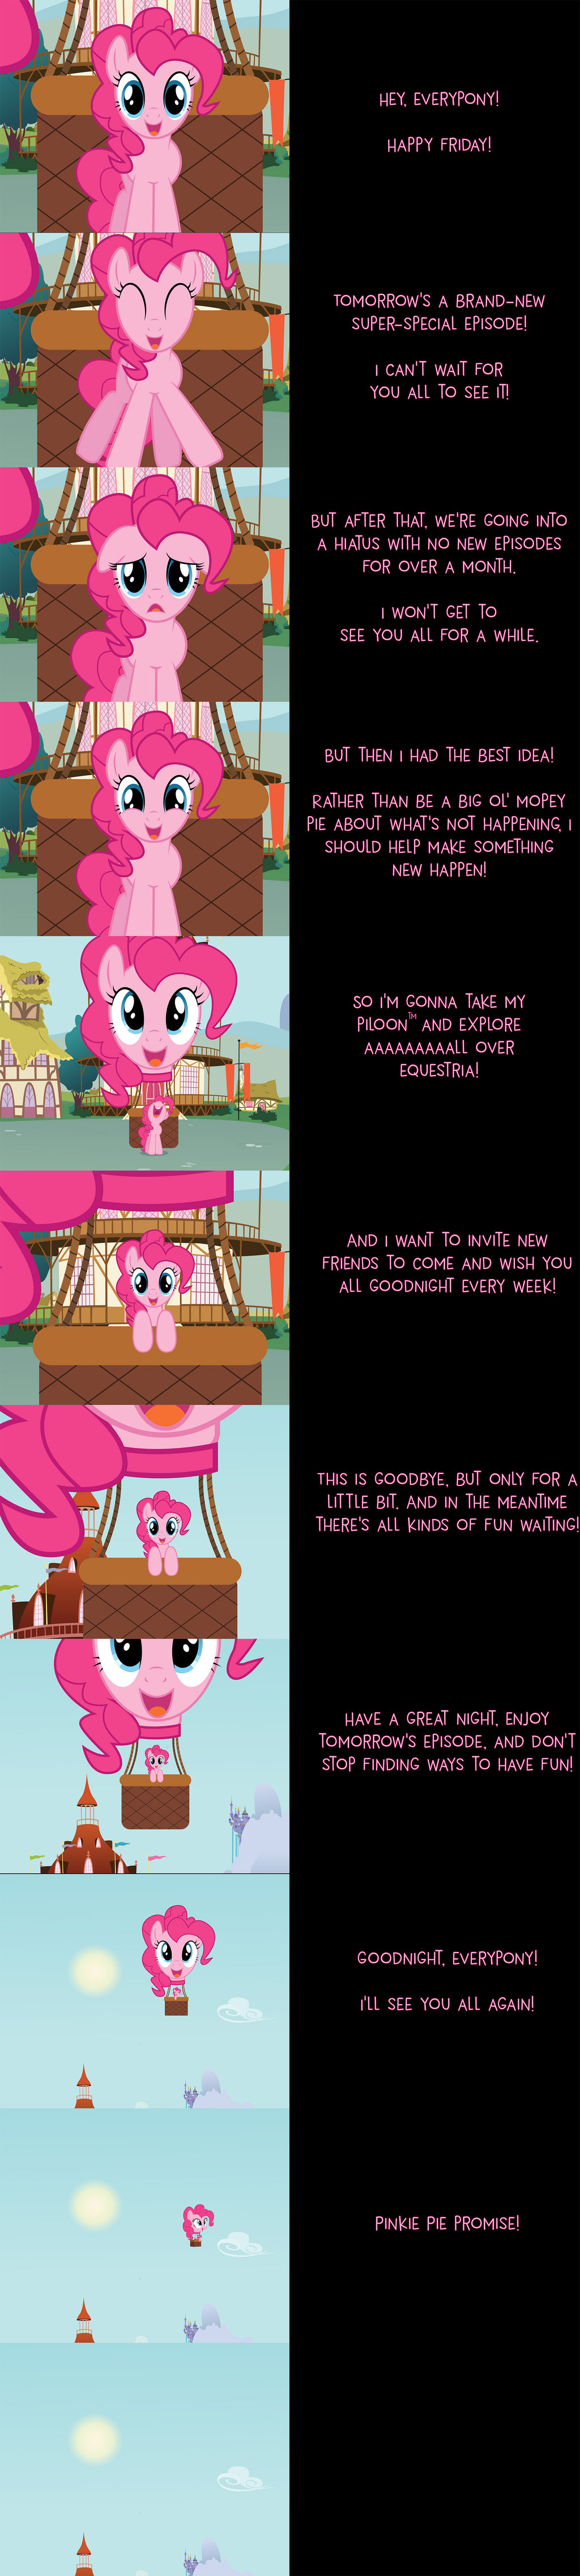 Pinkie Pie Says Goodnight: Hiatus